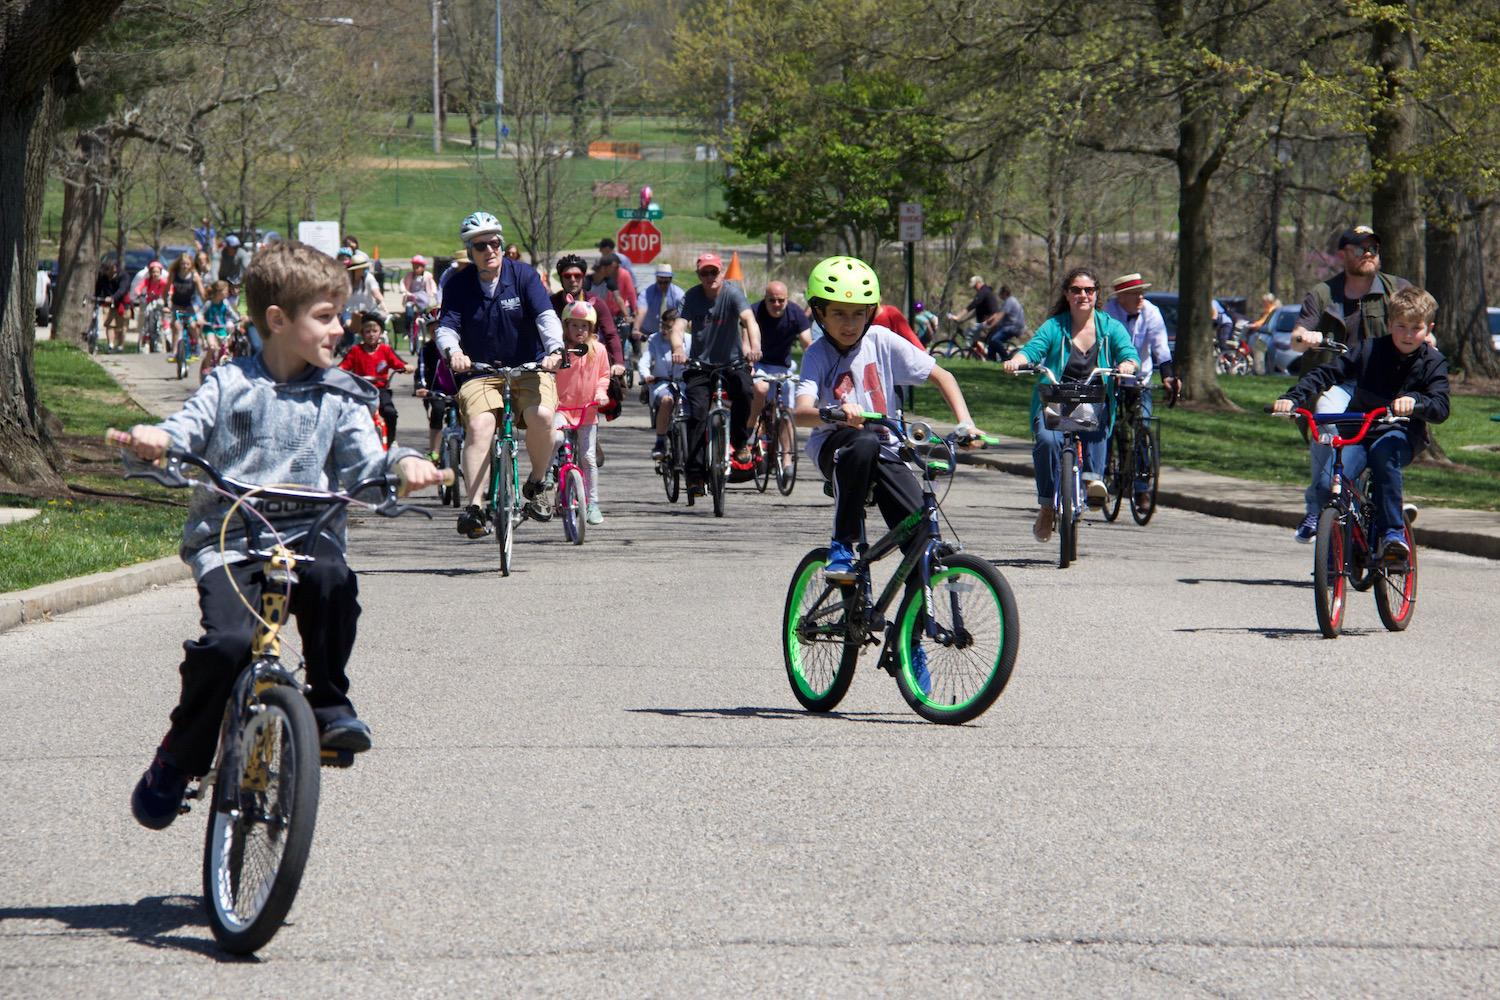 The city of Fort Thomas held its second annual Seersucker bike ride on Sunday, April 29. / Image: Dr. Richard Sanders // Published: 4.30.18